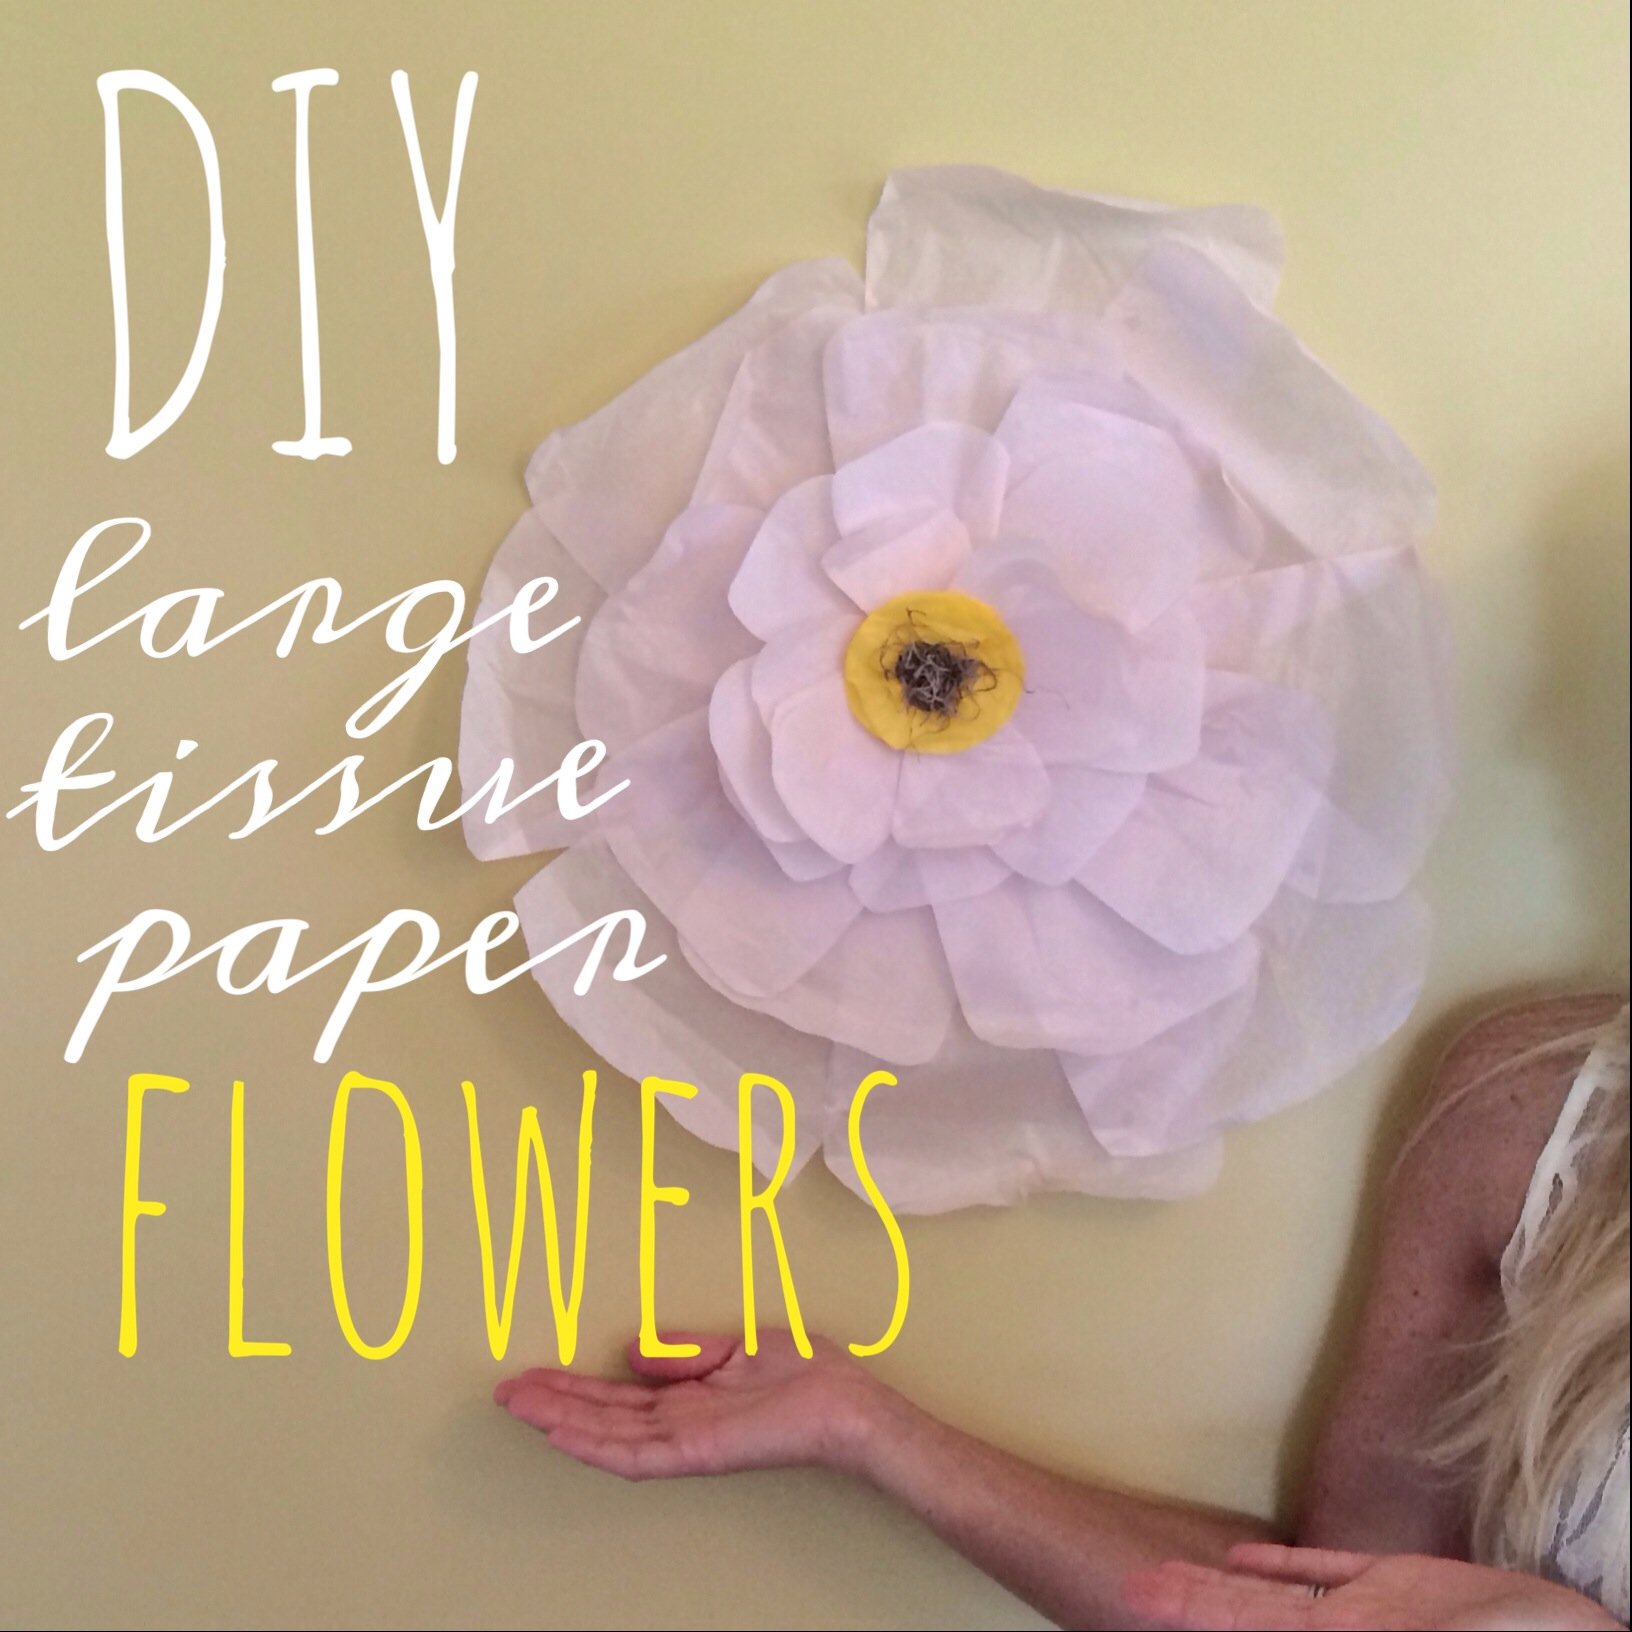 Diy large tissue paper flowers mightylinksfo Images